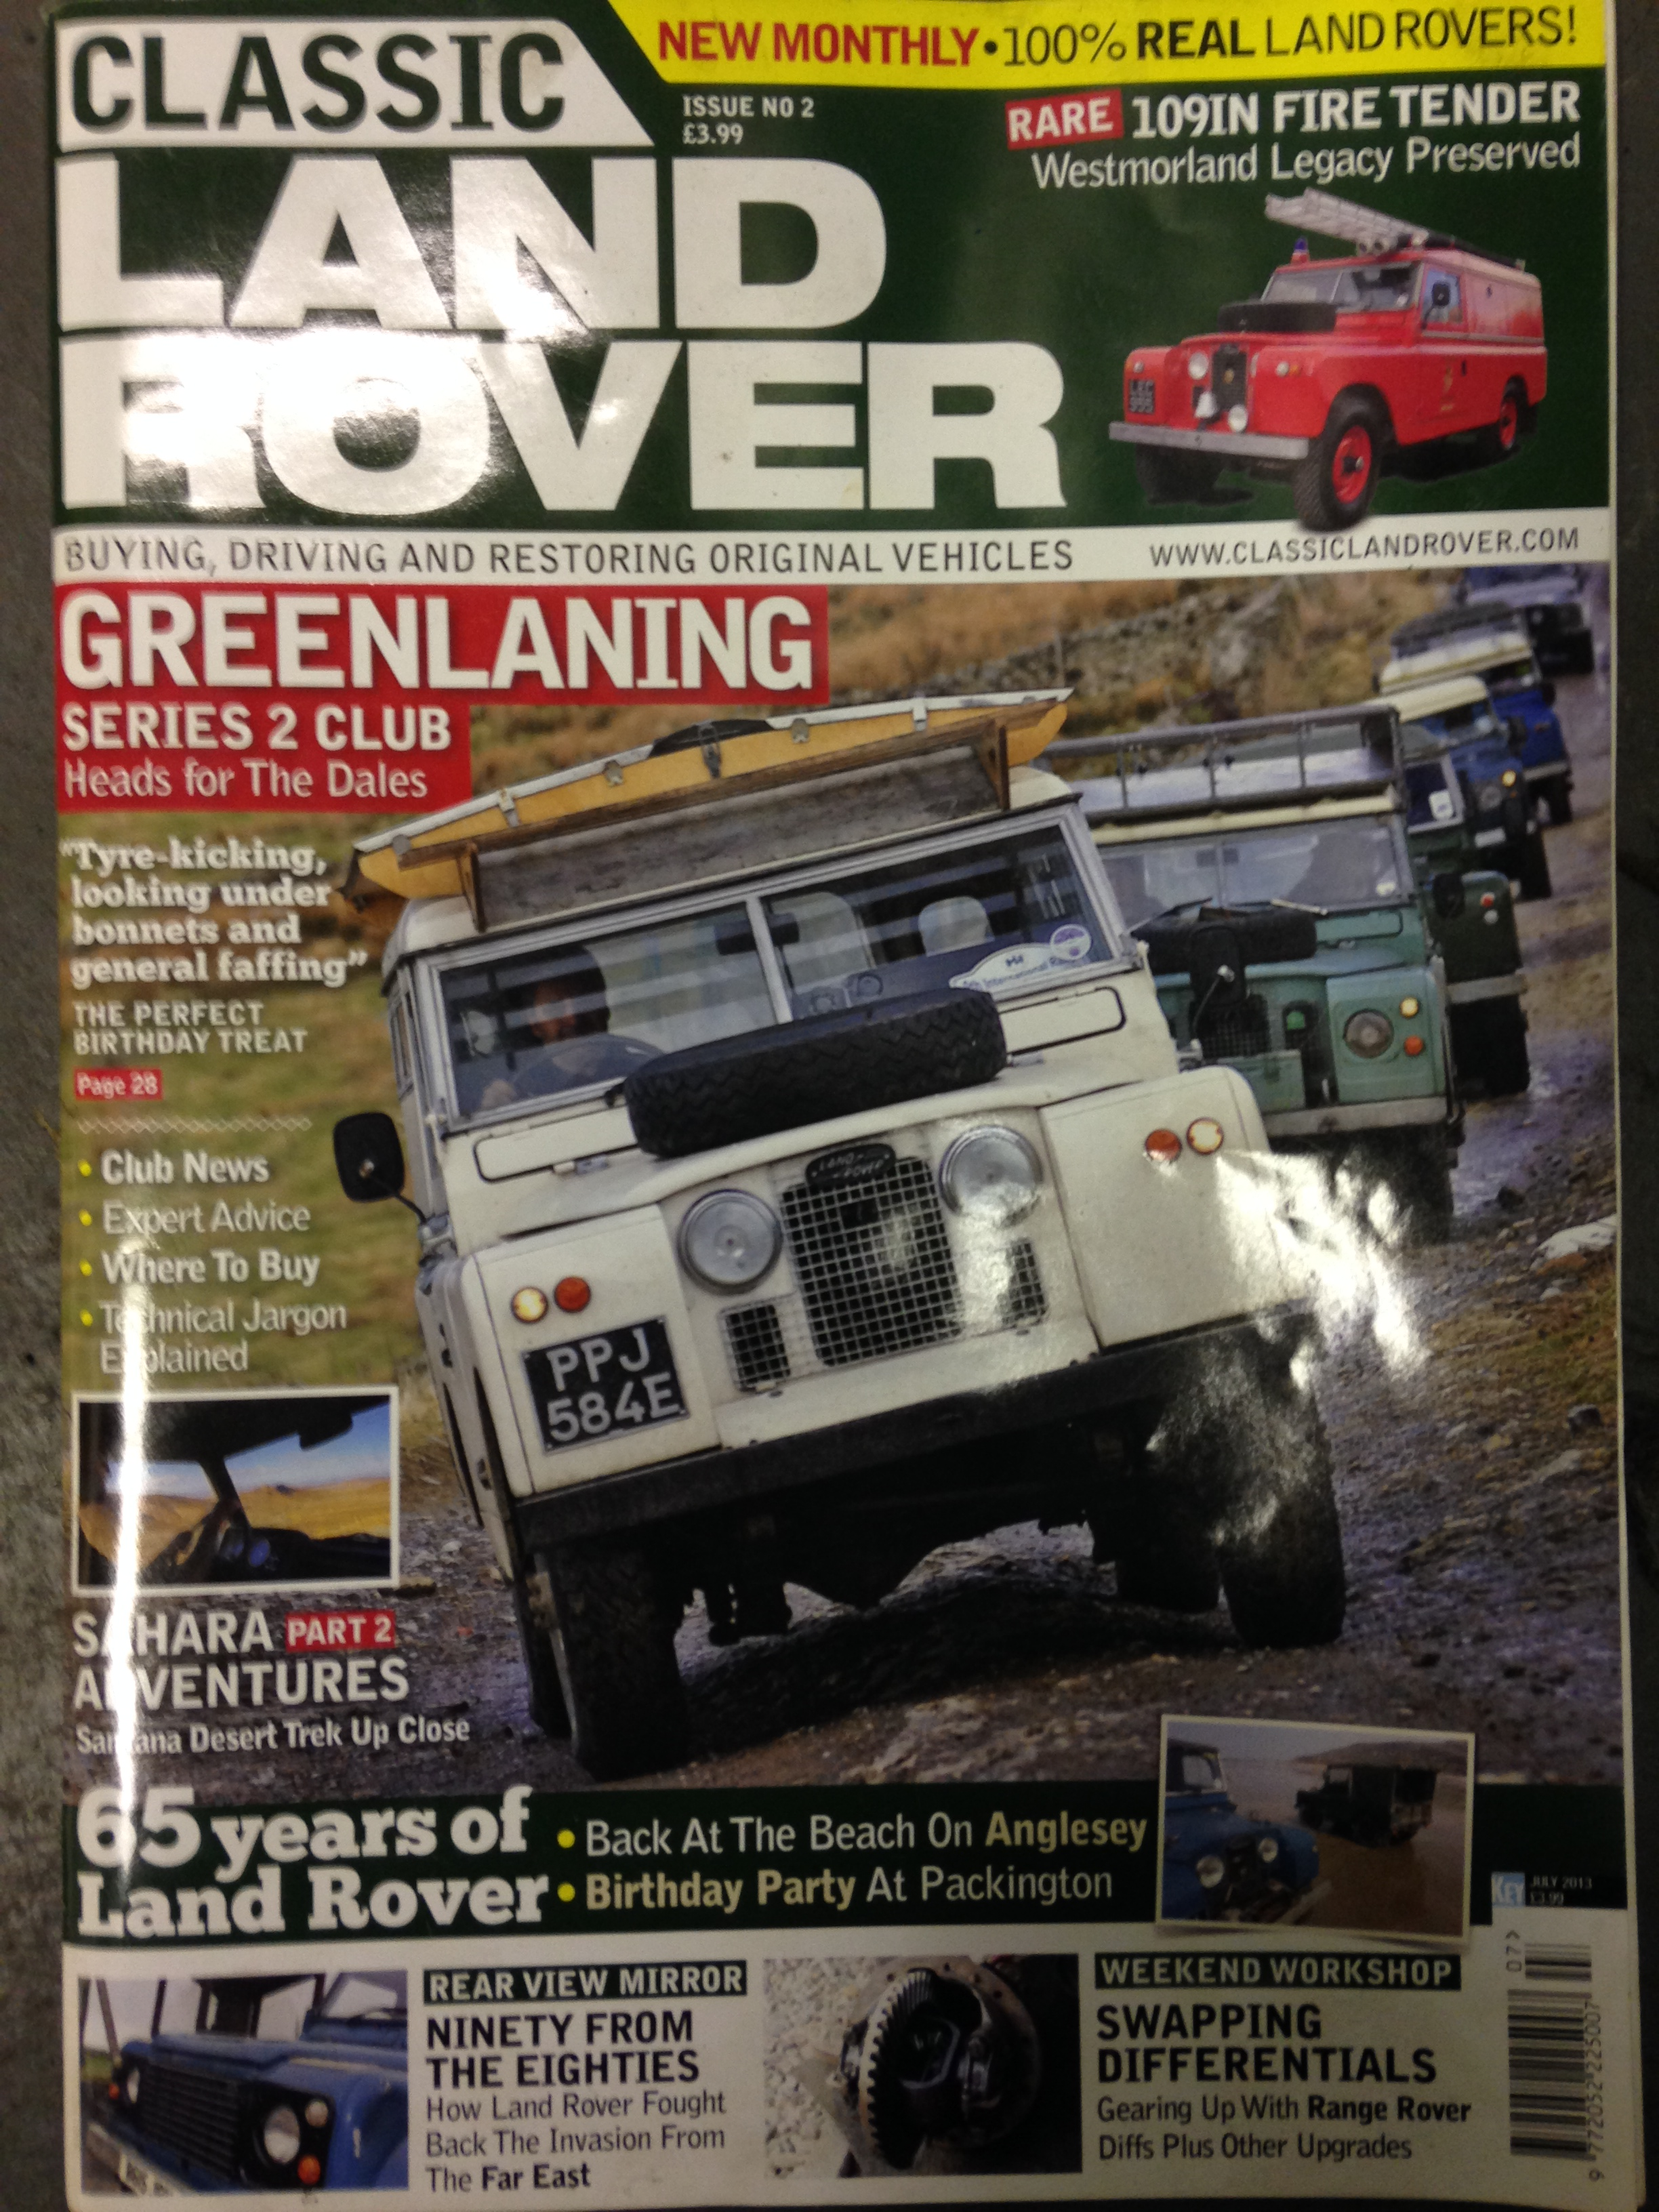 Classic Land Rover feature